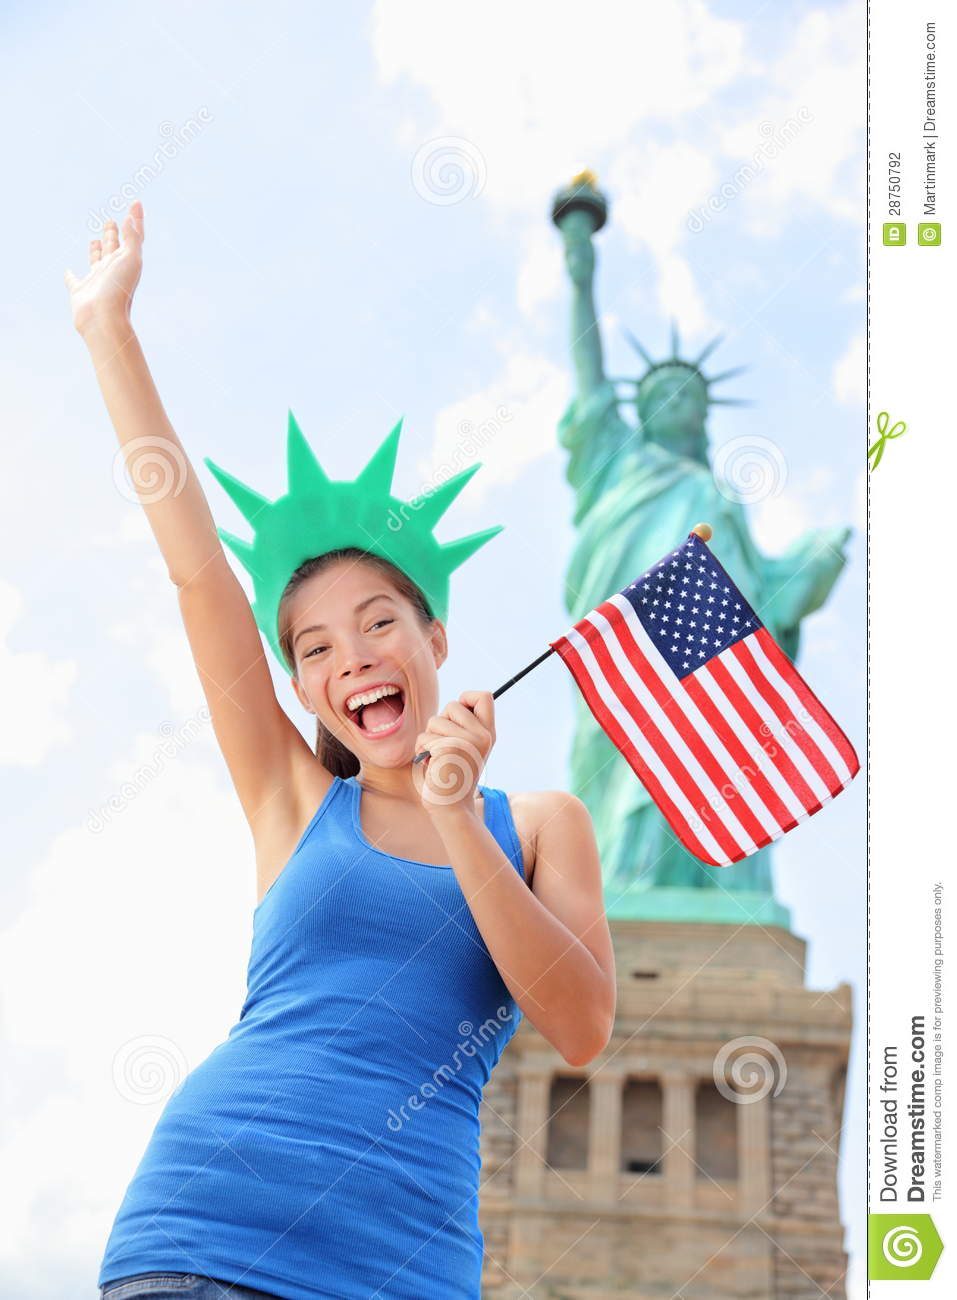 tourist at statue of liberty, new york, usa stock photo - image of